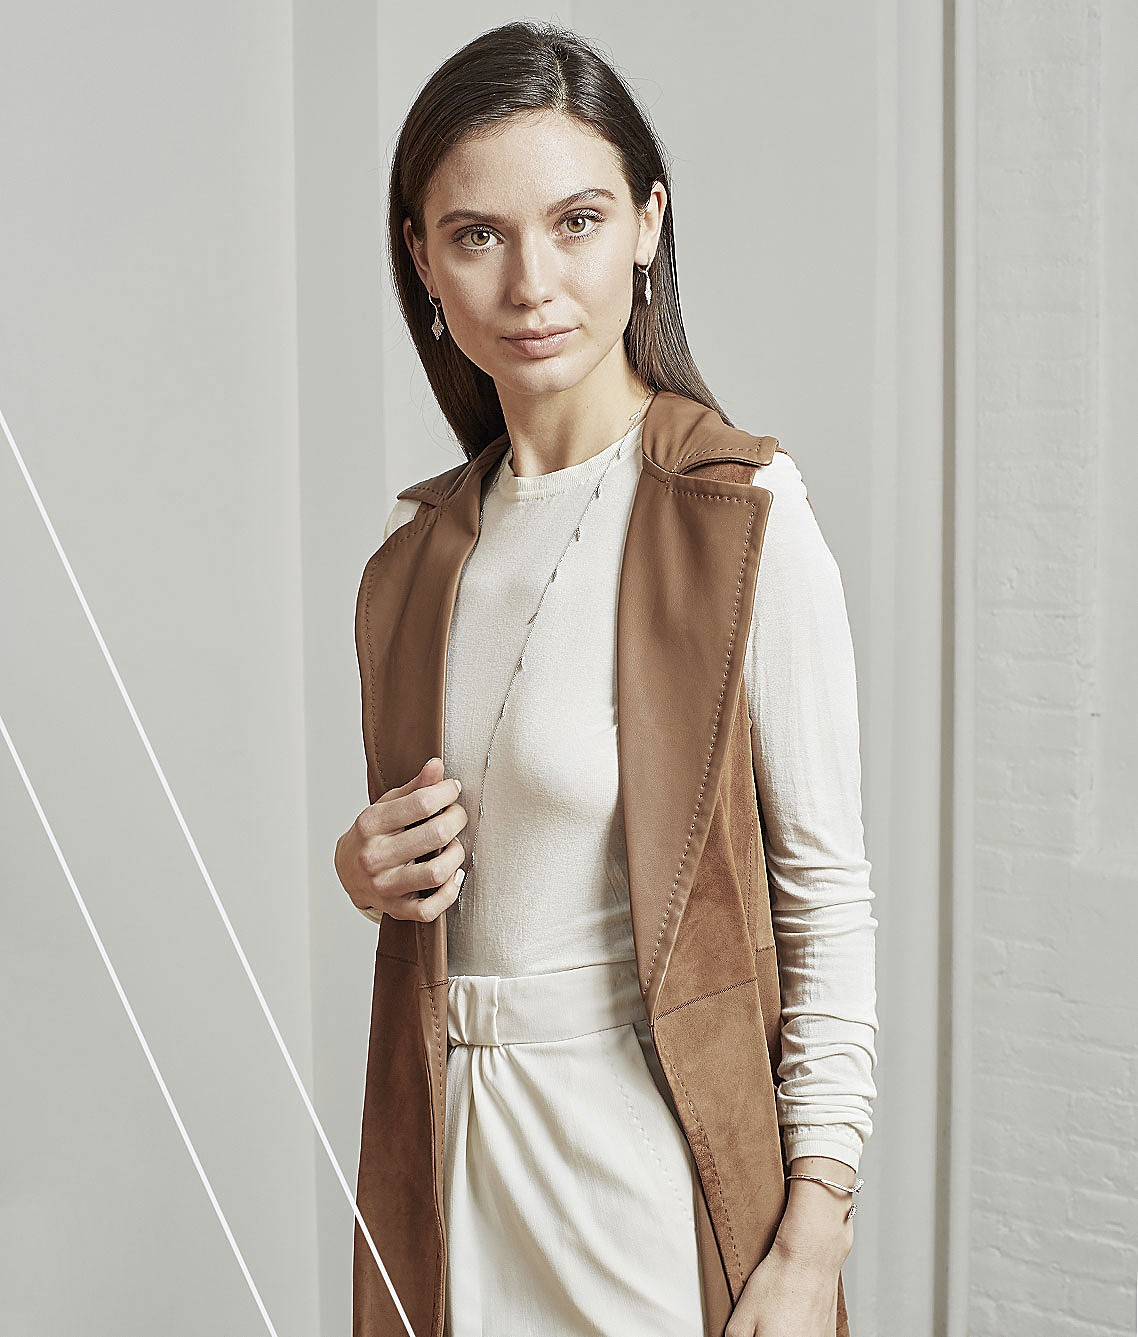 00faaa7760be Like Gabriel jewelry, Max Mara is not cheap, but it's an accessible luxury  that you can enjoy every day. We both create pieces that are recognizable  with a ...